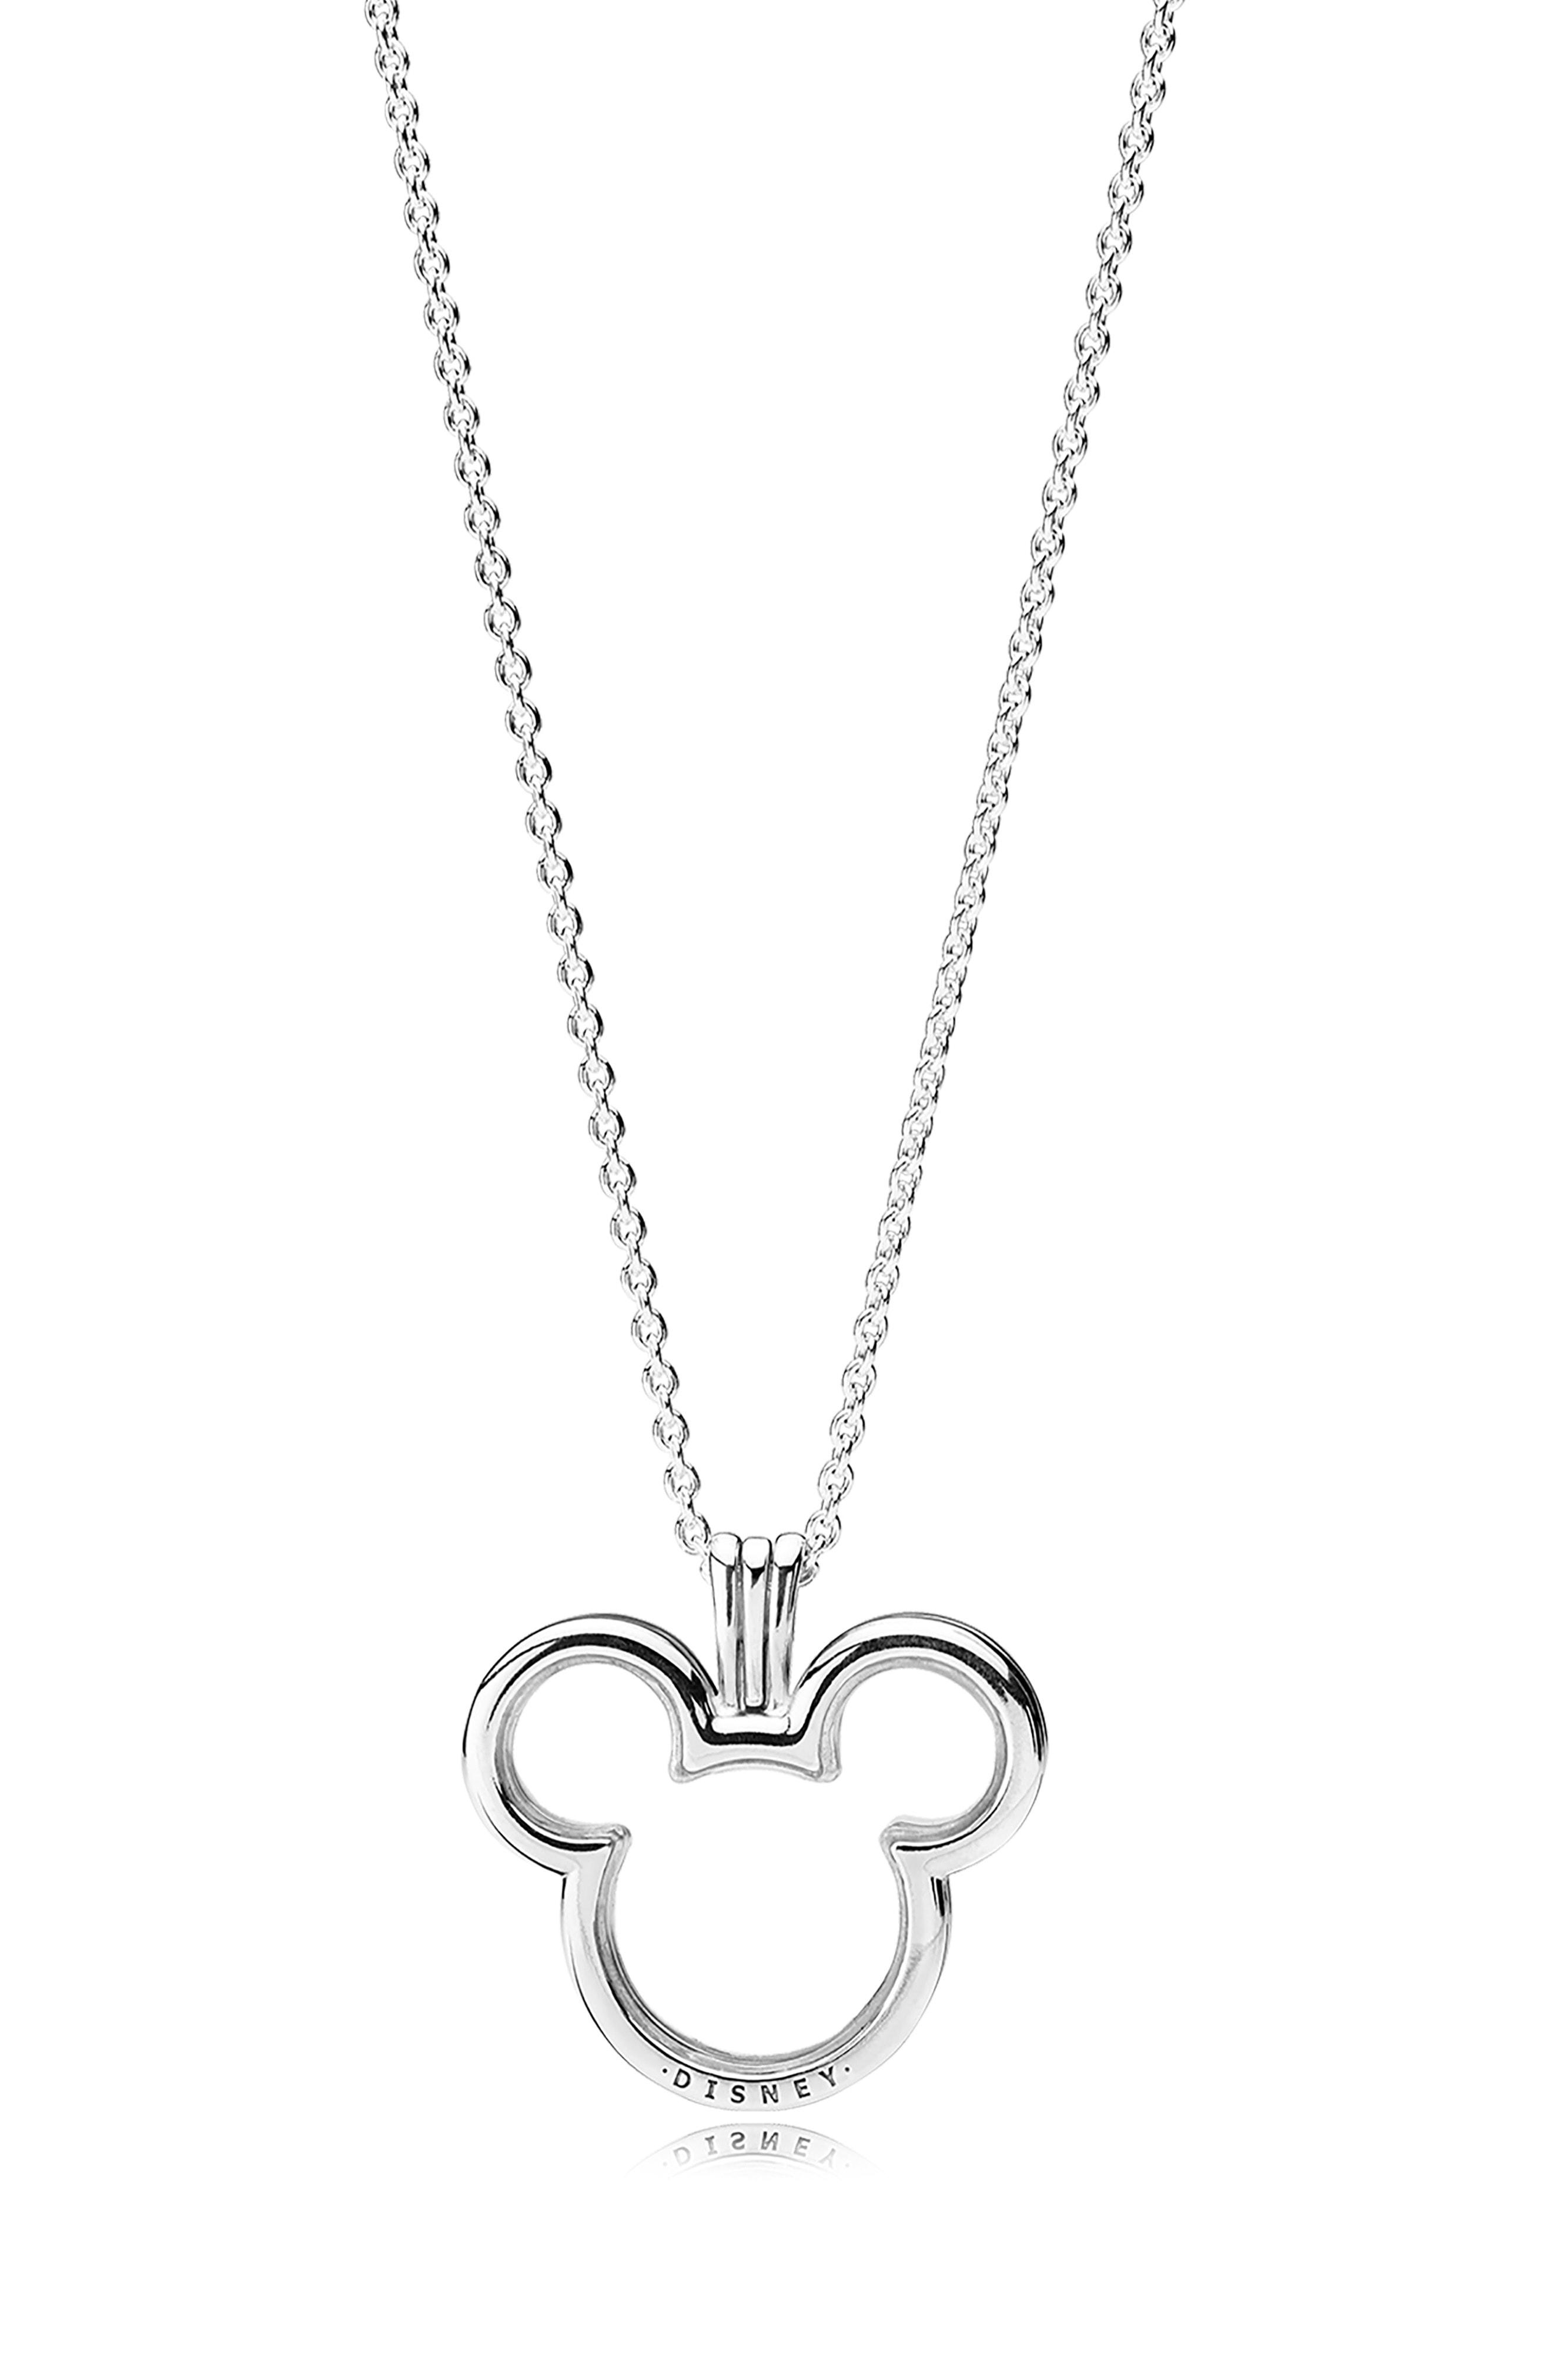 cdd3b6337 PANDORA Disney Mickey Mouse Floating Locket Pendant Necklace in ...